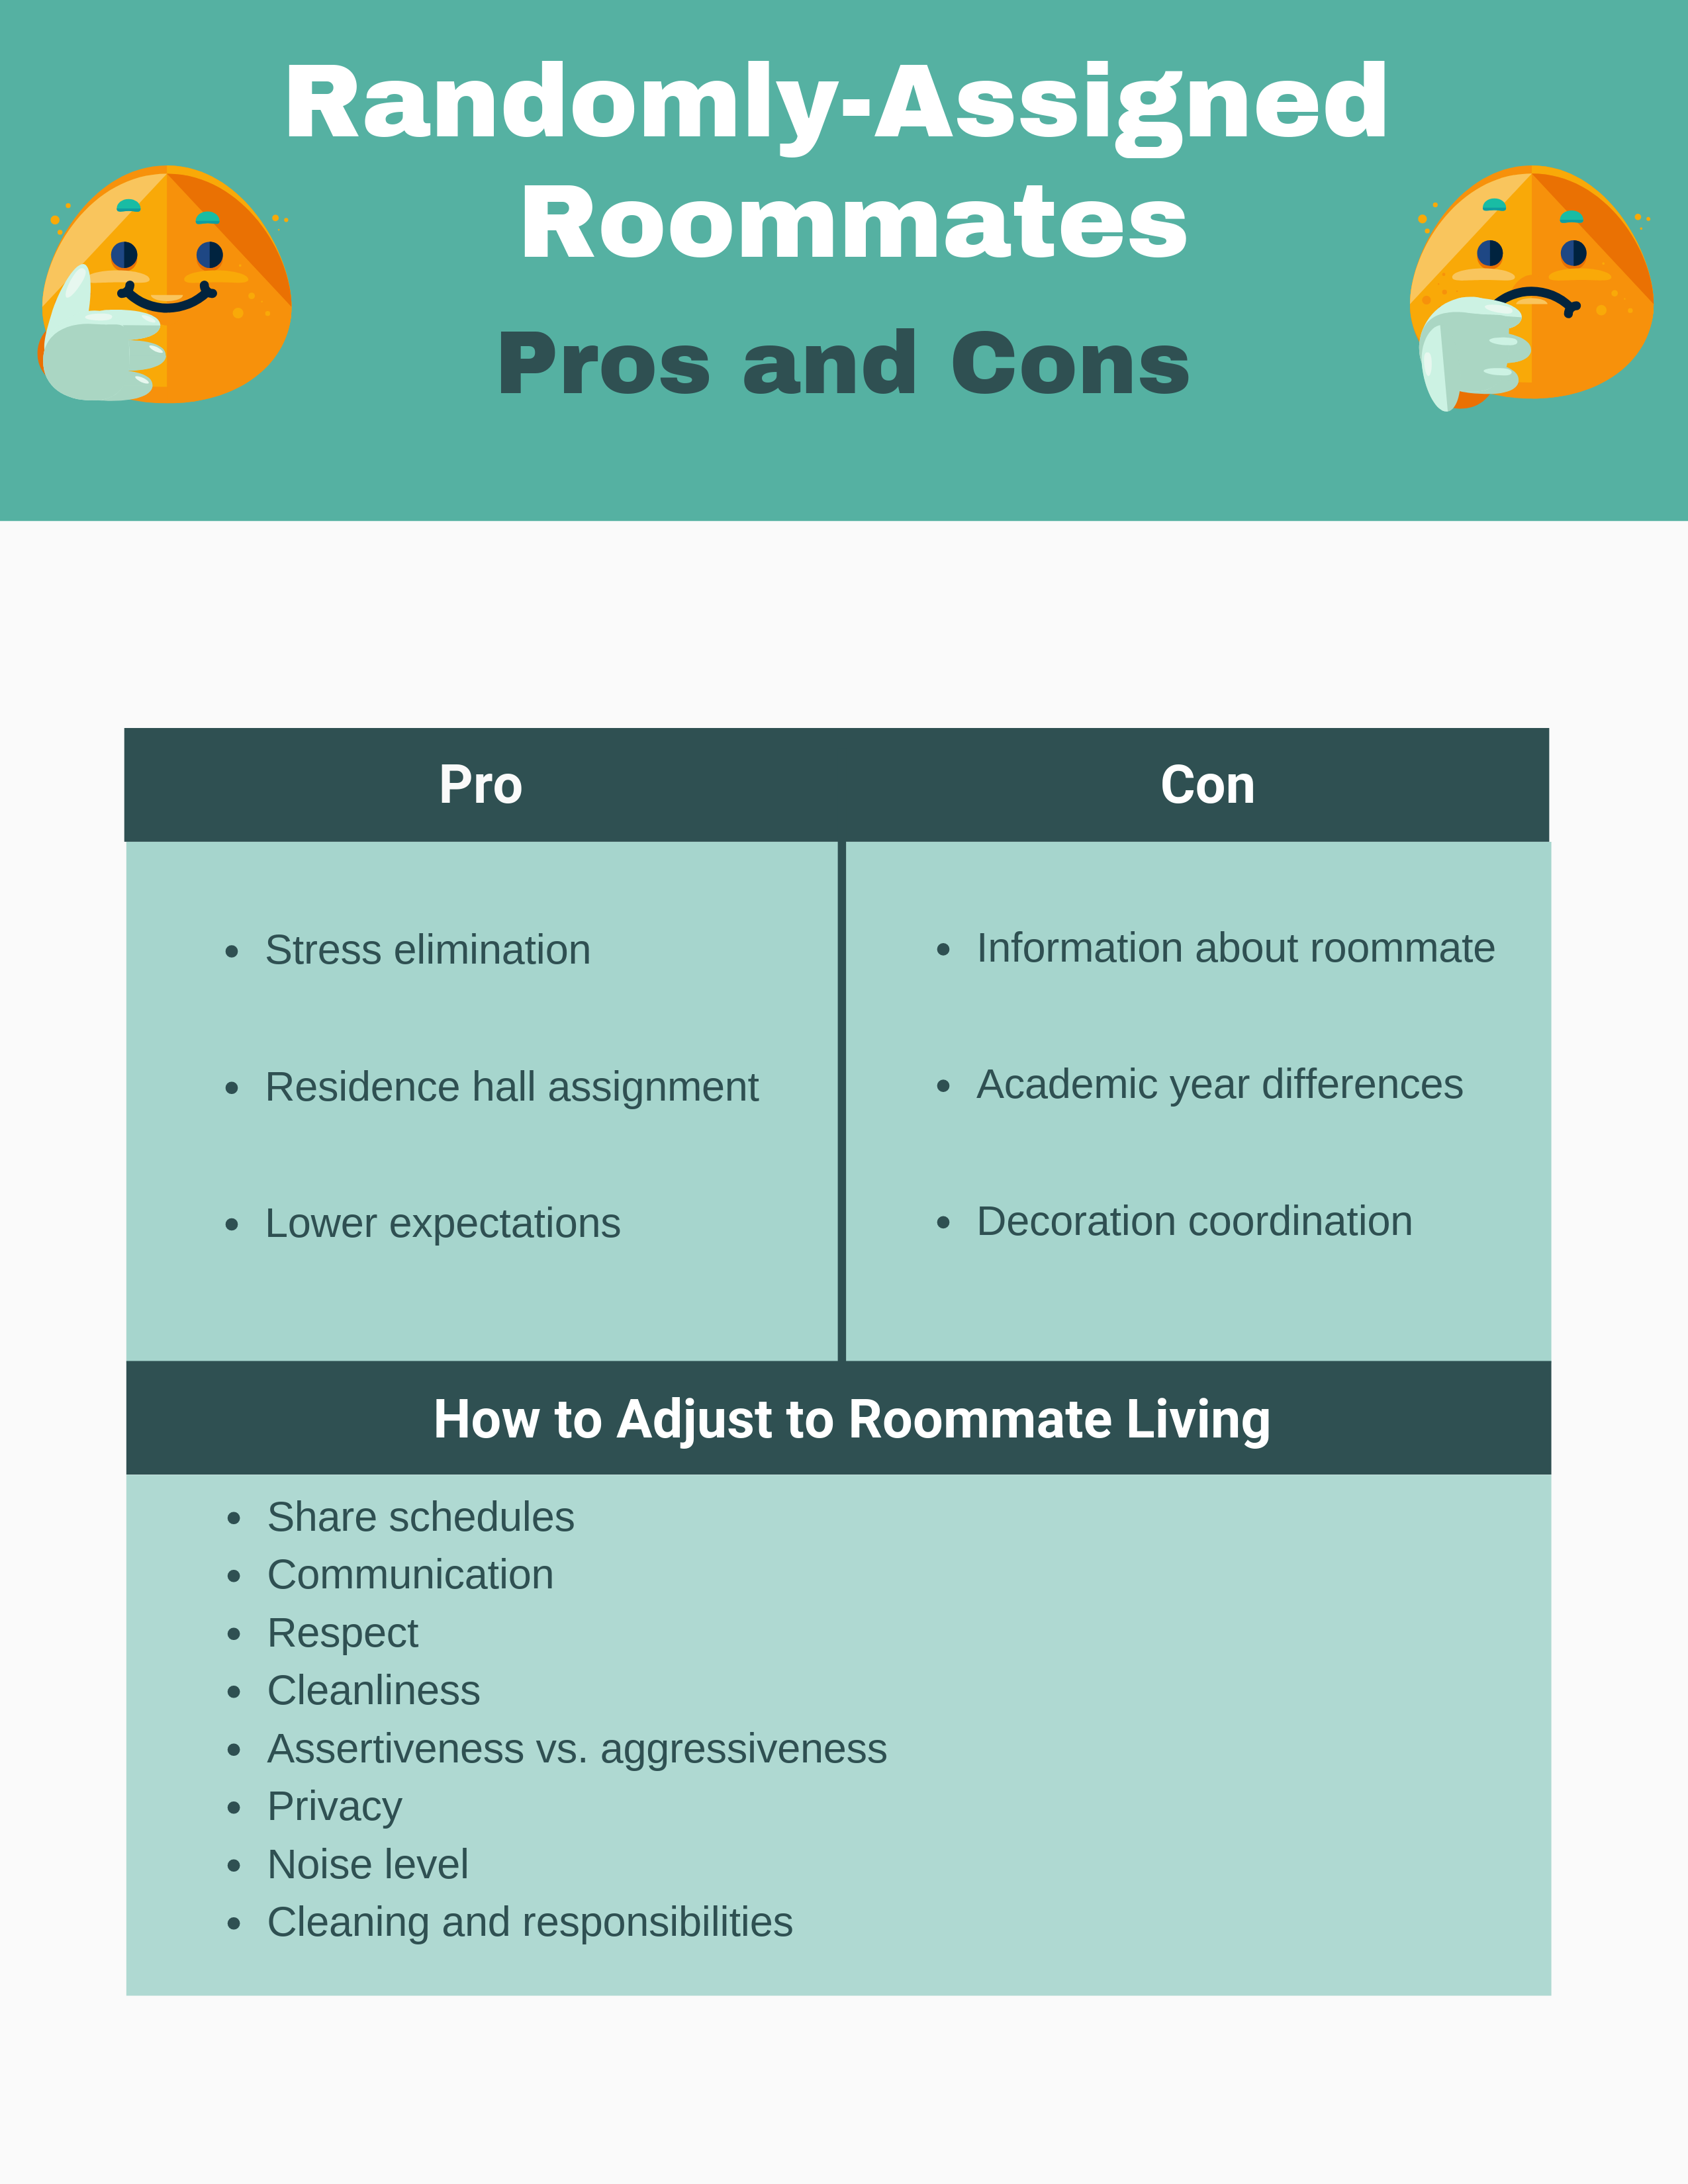 Roommate Tips: The Pros & Cons of Getting a Randomly-Assigned College Roommate